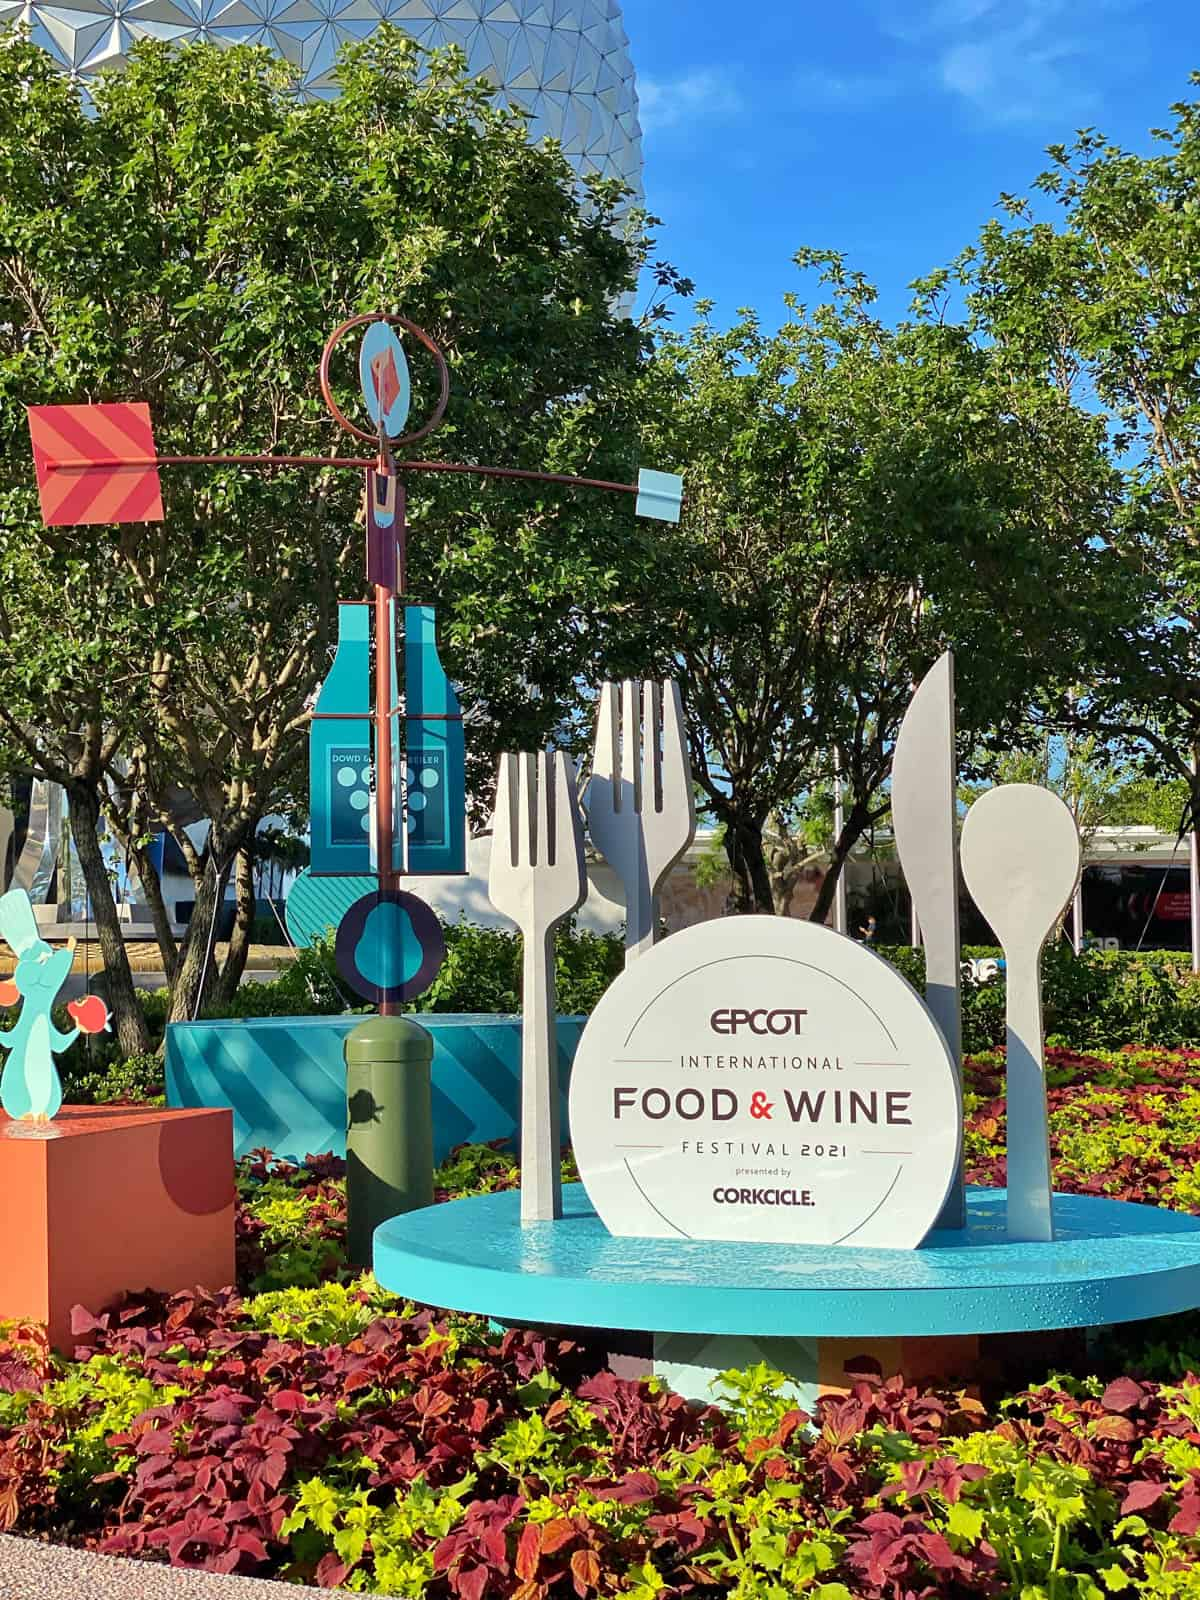 food and wine sign at epcot